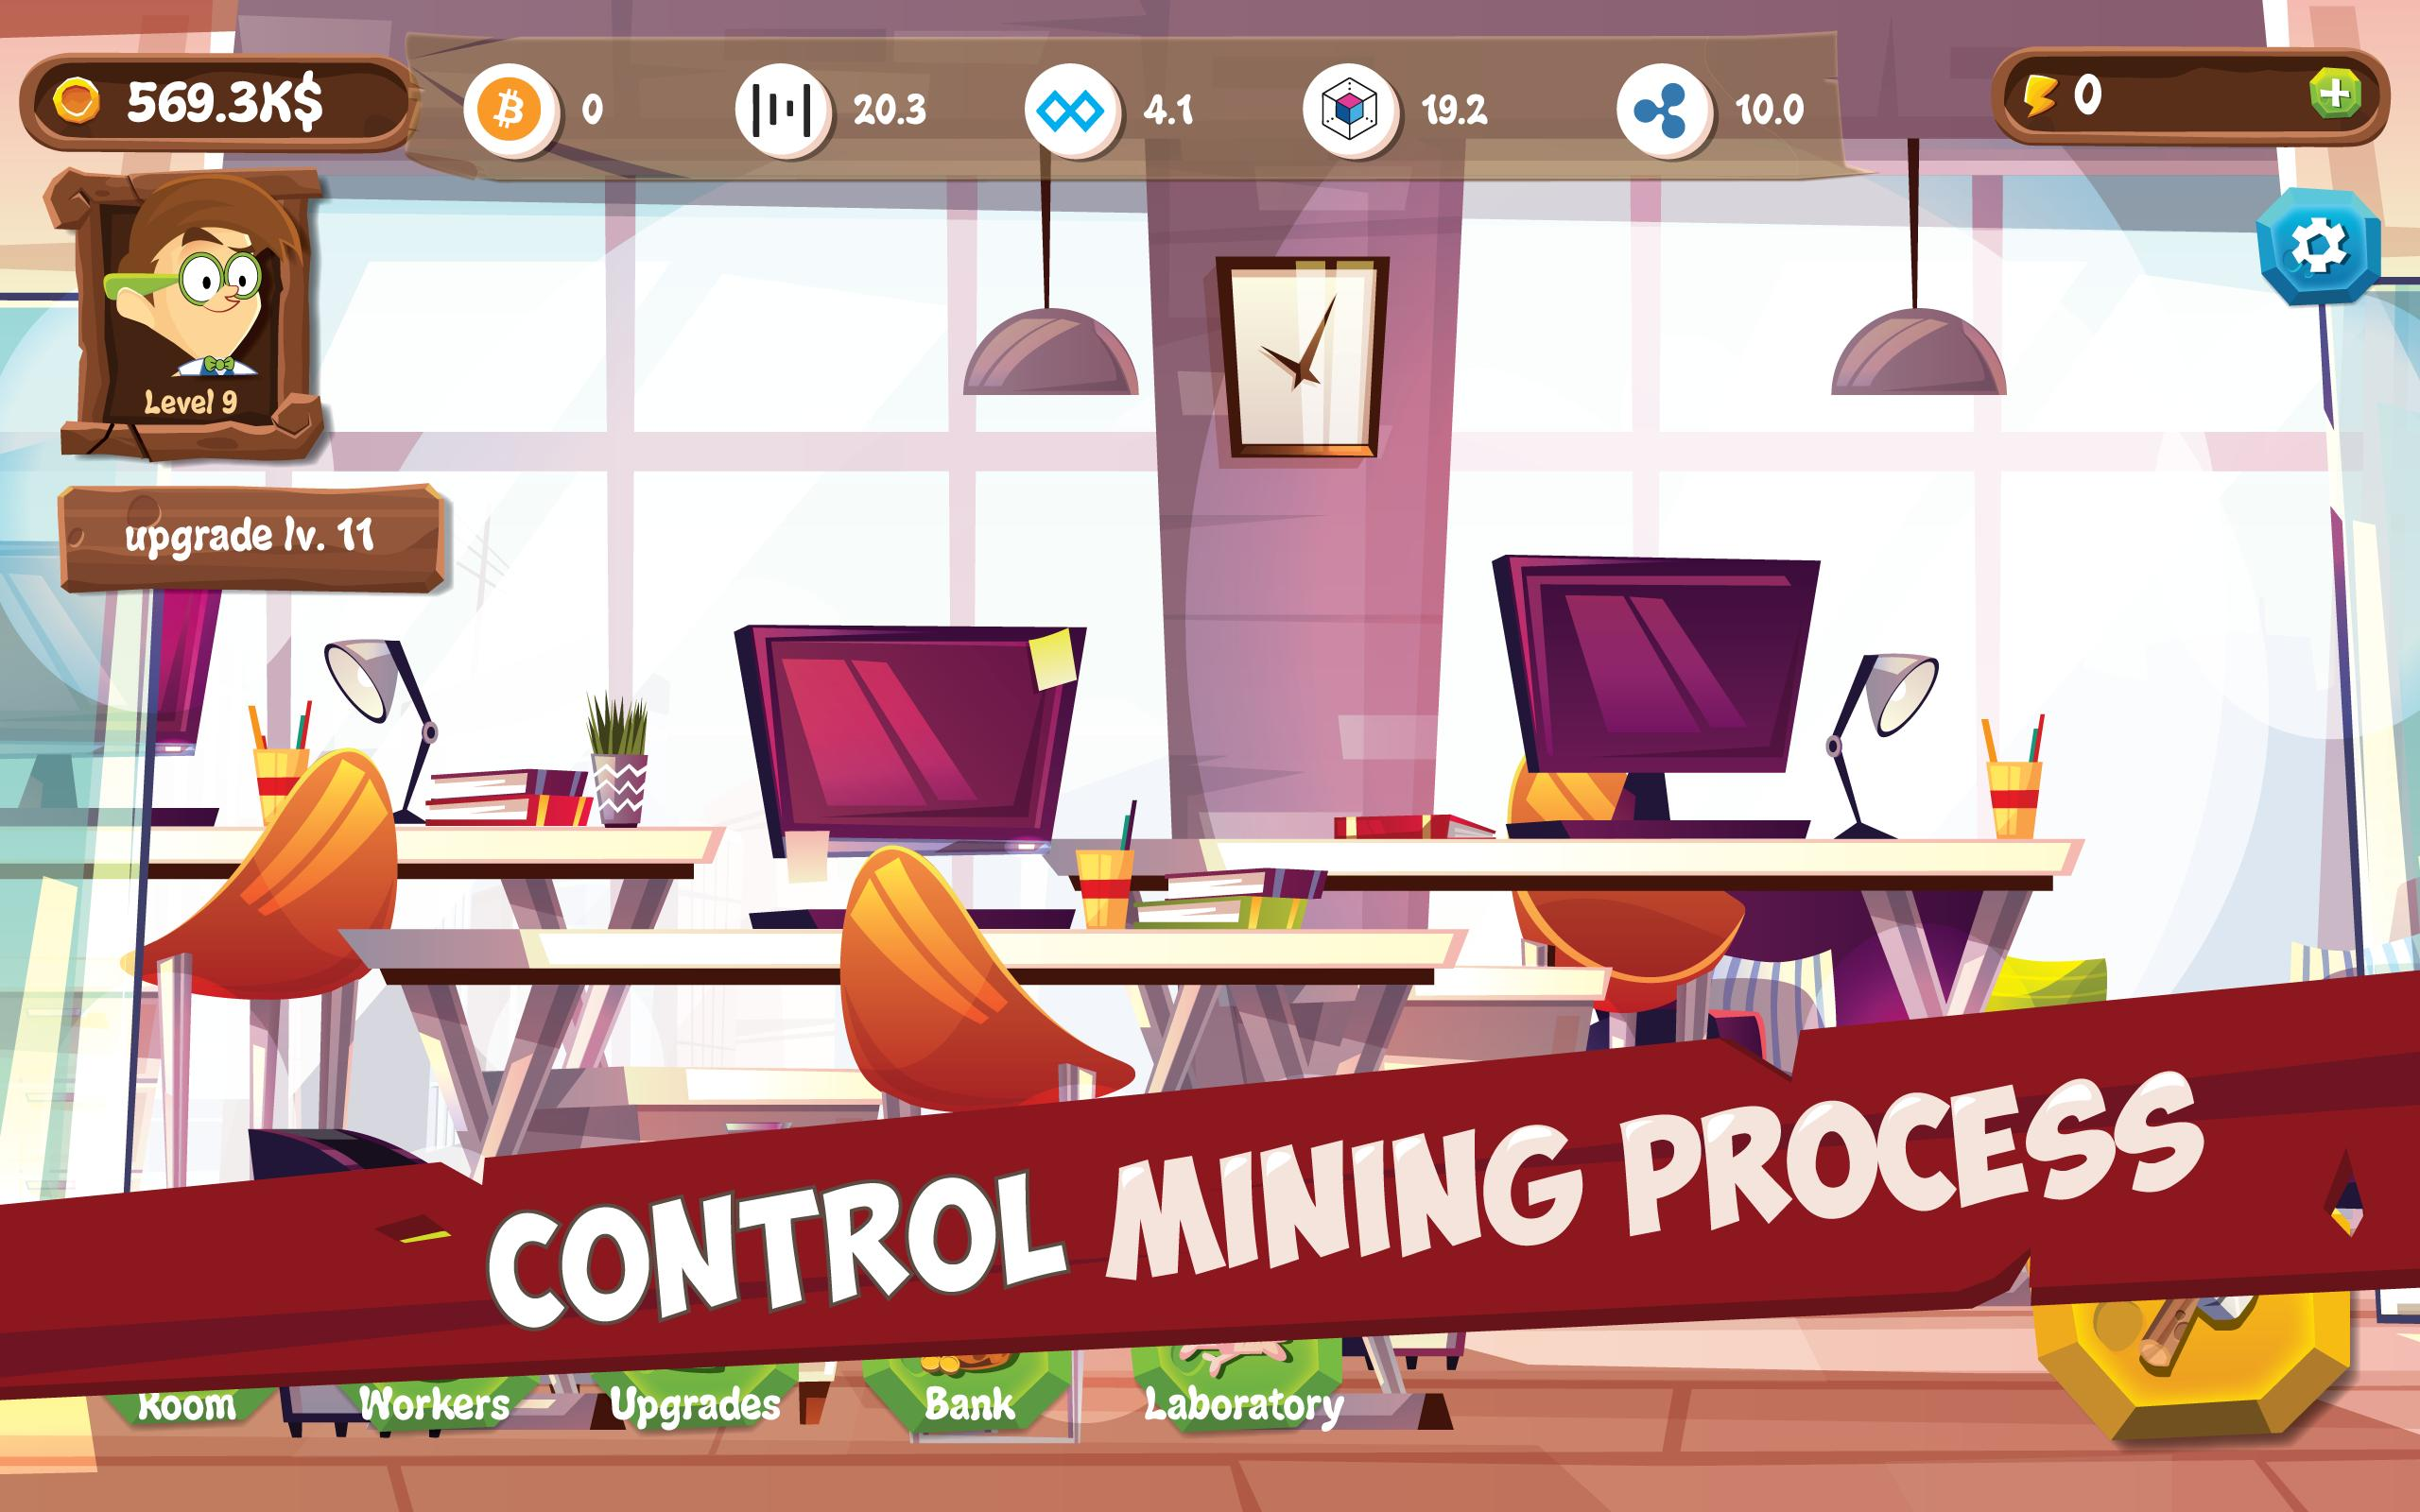 Bitcoin Mining Simulator - Idle Clicker Tycoon for Android - APK